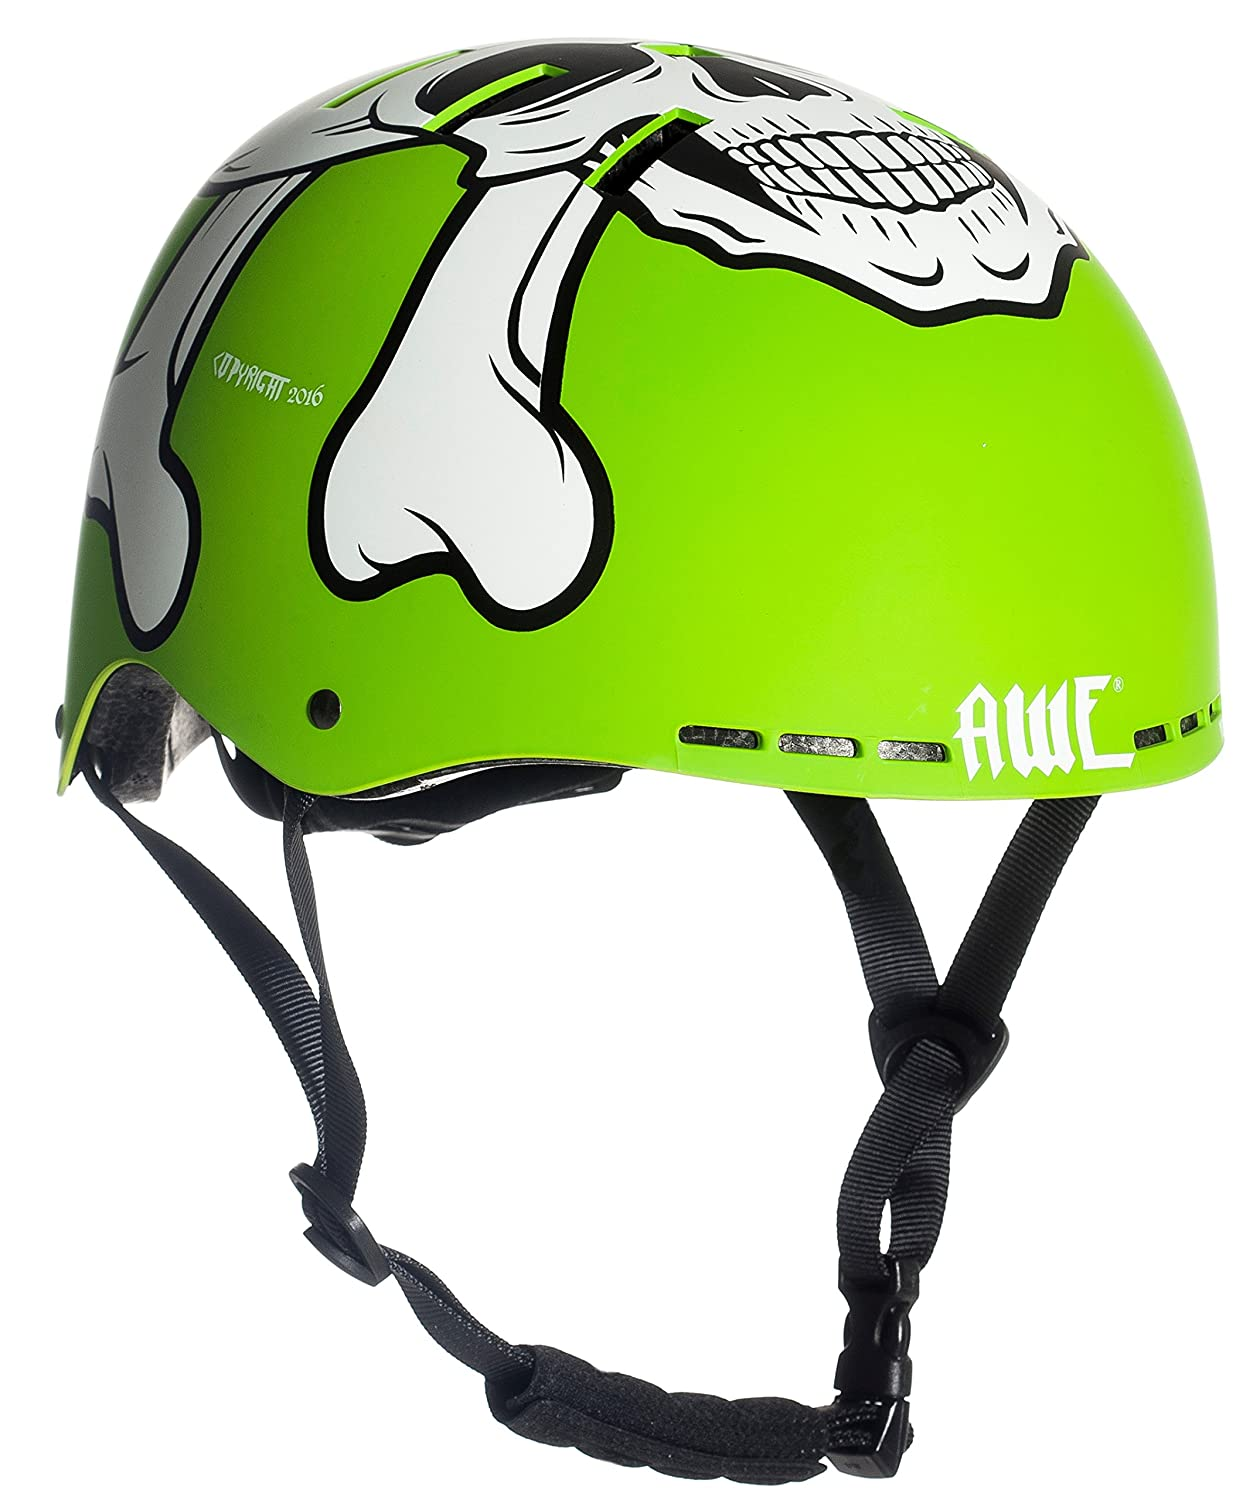 AWE® MEET YOUR MAKER™ BMX Verde 55-58cm del casco REEMPLAZO LIBRE de 5 AÑOS del CRASH * AWE®